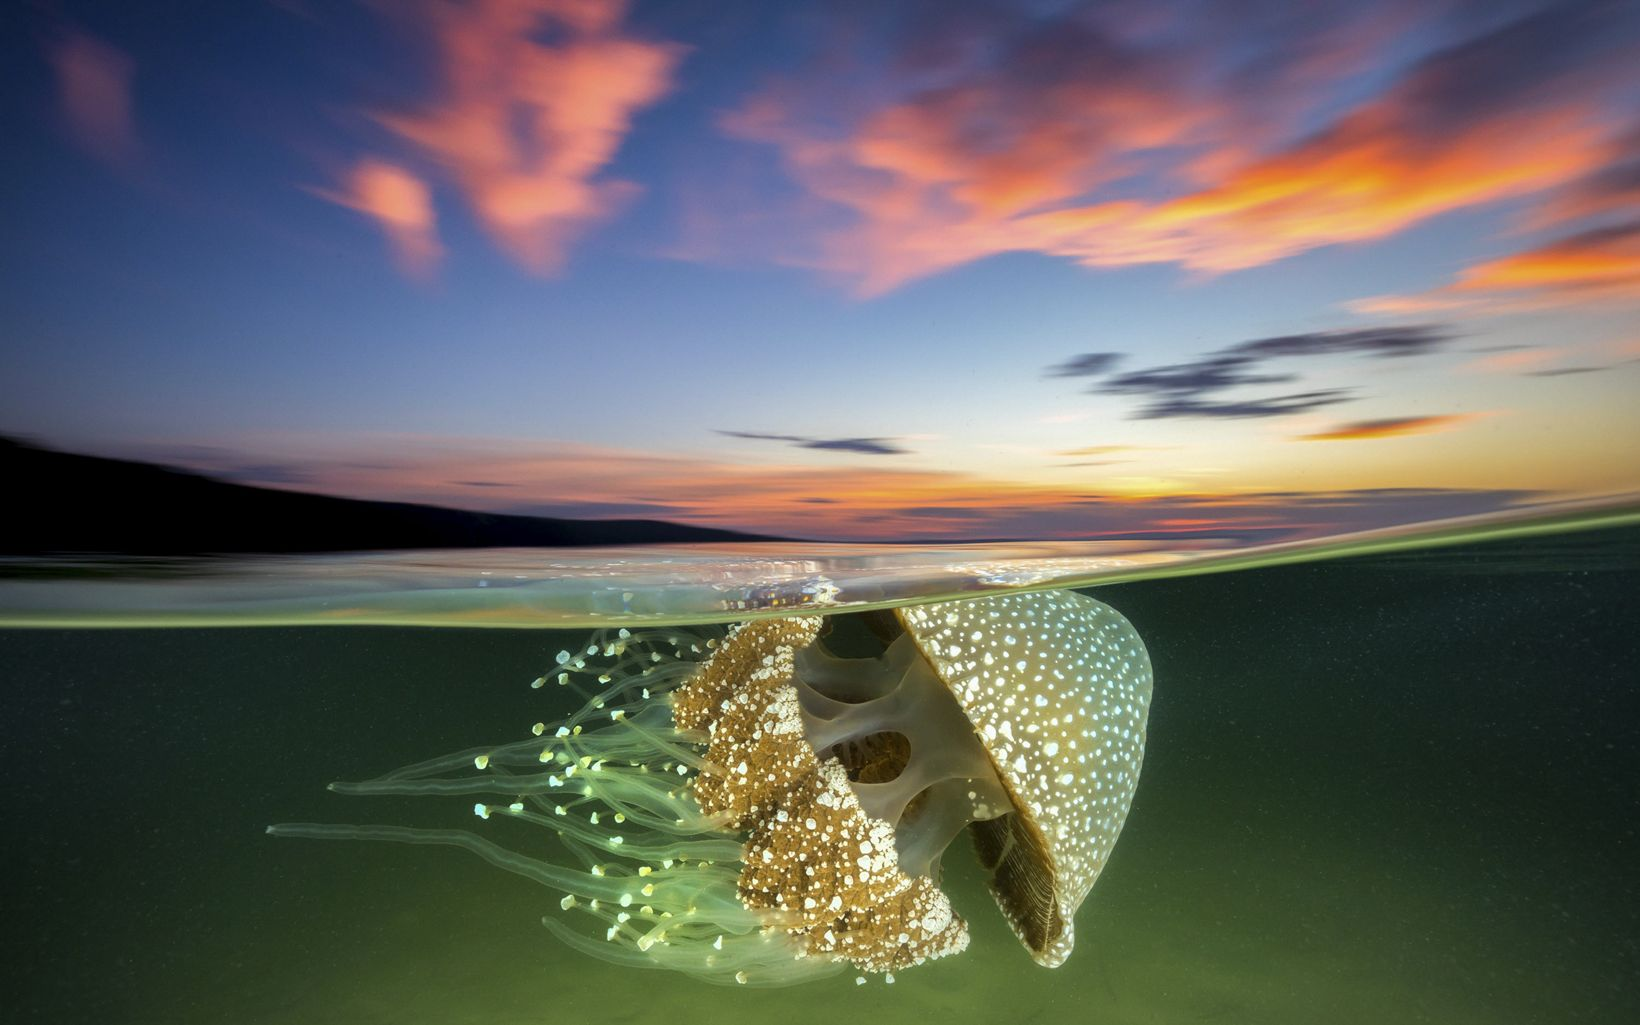 A White Spotted Jellyfish drifts effortlessly in the current as the sun sets over Jervis Bay.